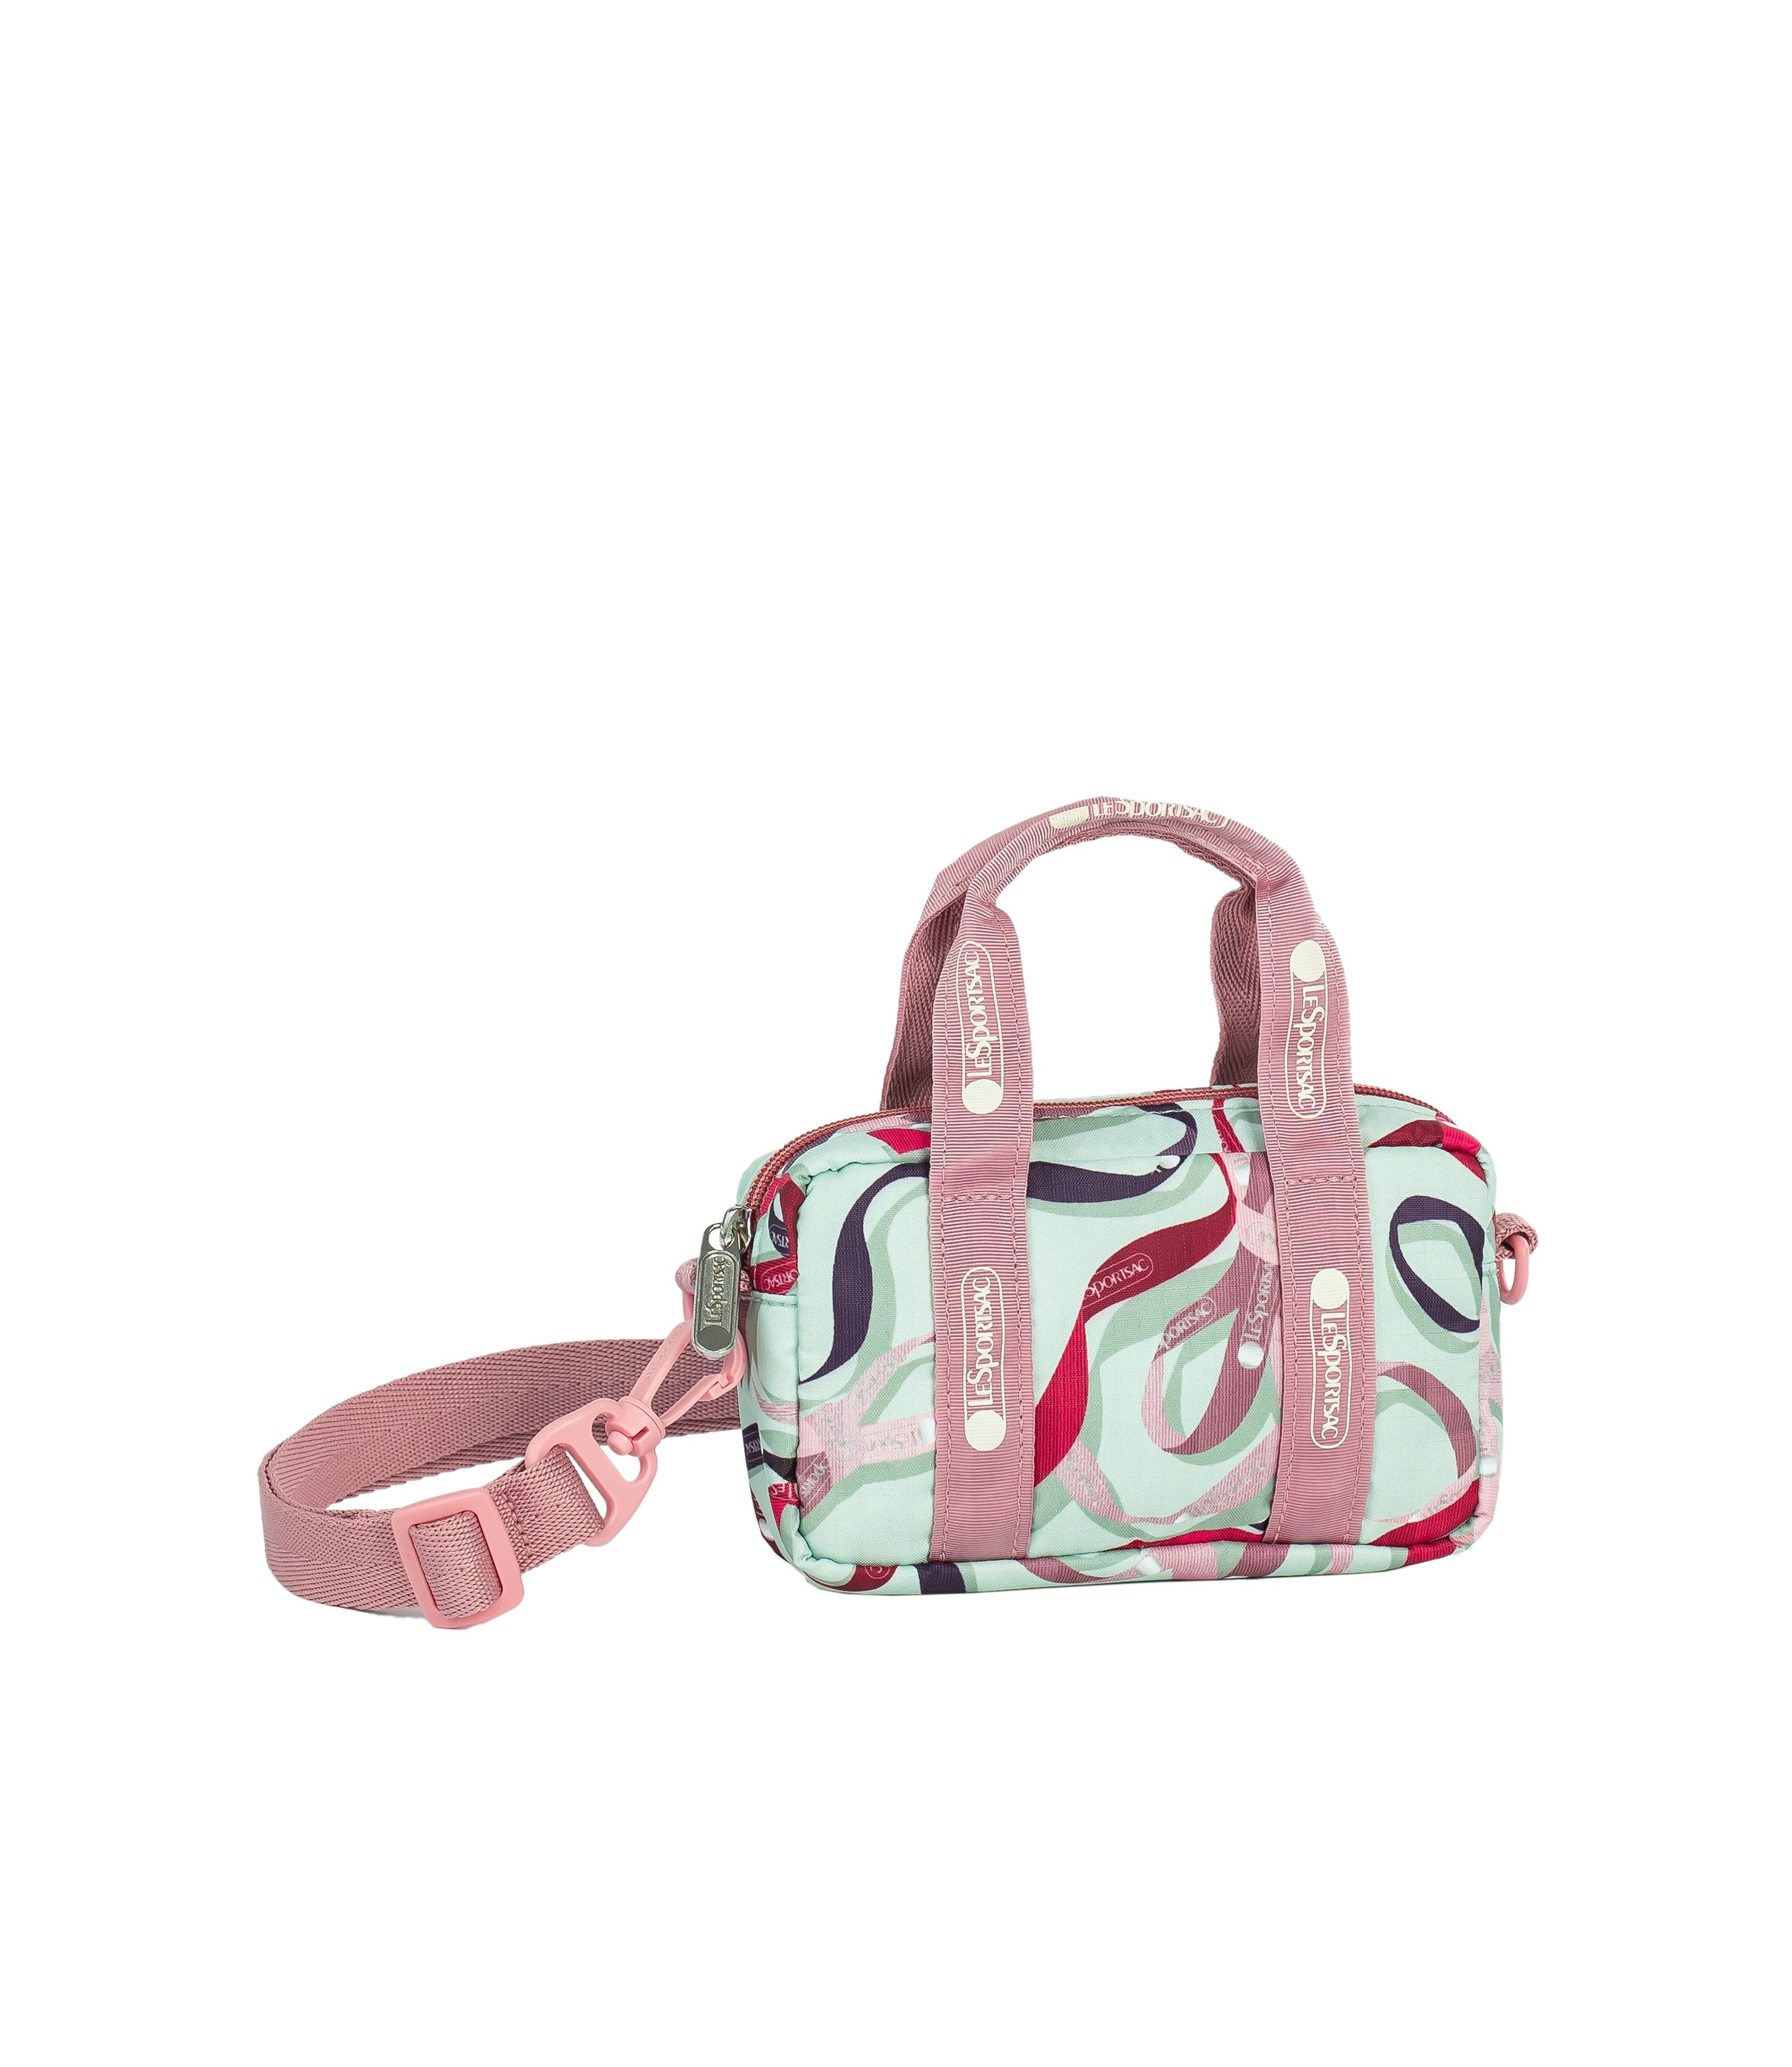 LeSportsac - Handbags - Crossbody Box Belt Bag - Ribbons print